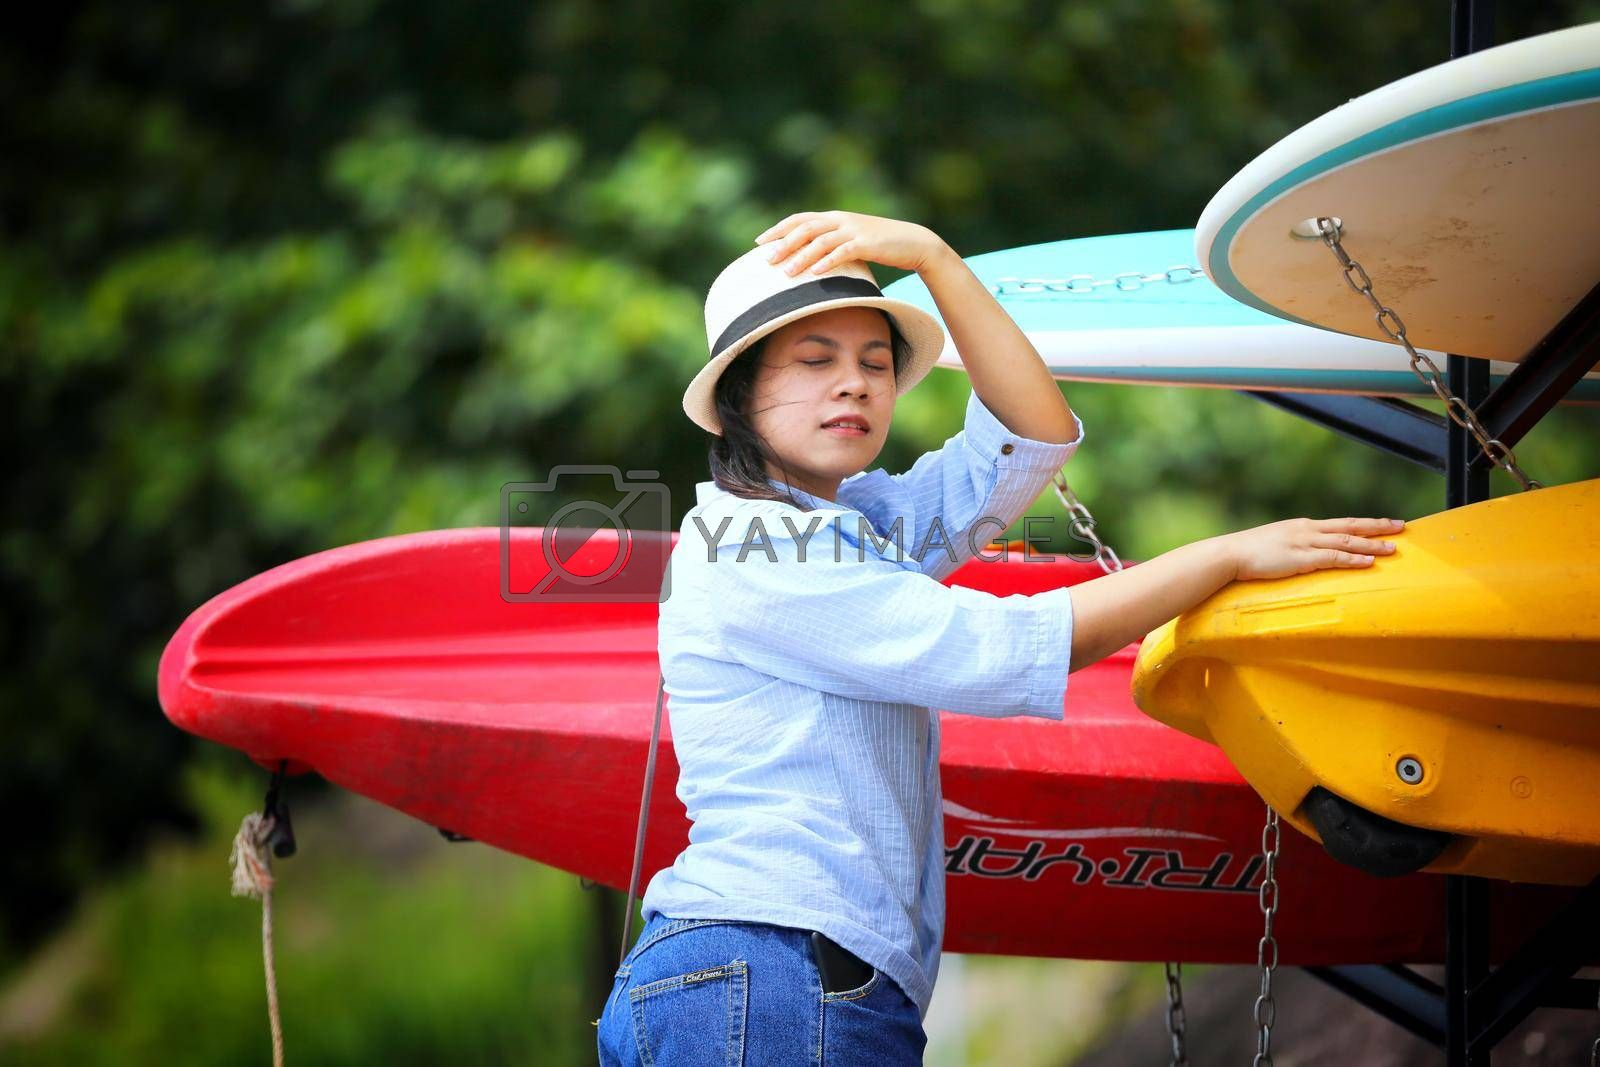 portrait of young Asian woman showing long braided standing by surfboard.